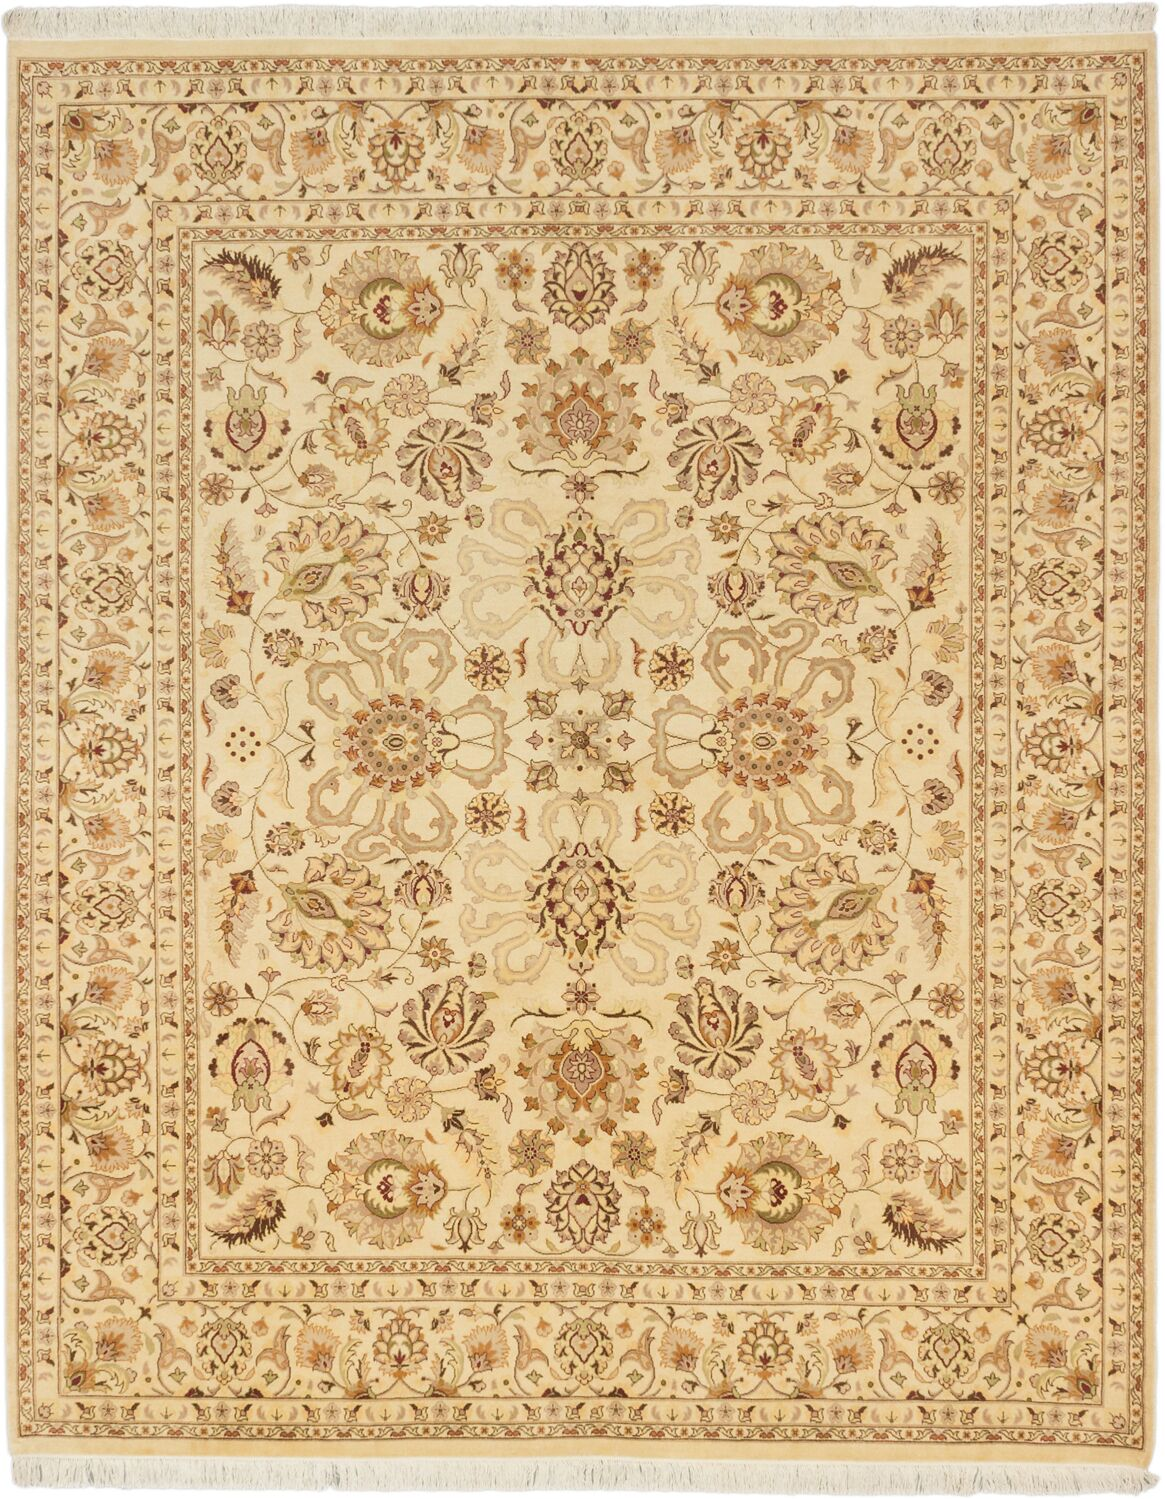 Peshawar Finest Hand-Knotted Wool Cream Area Rug